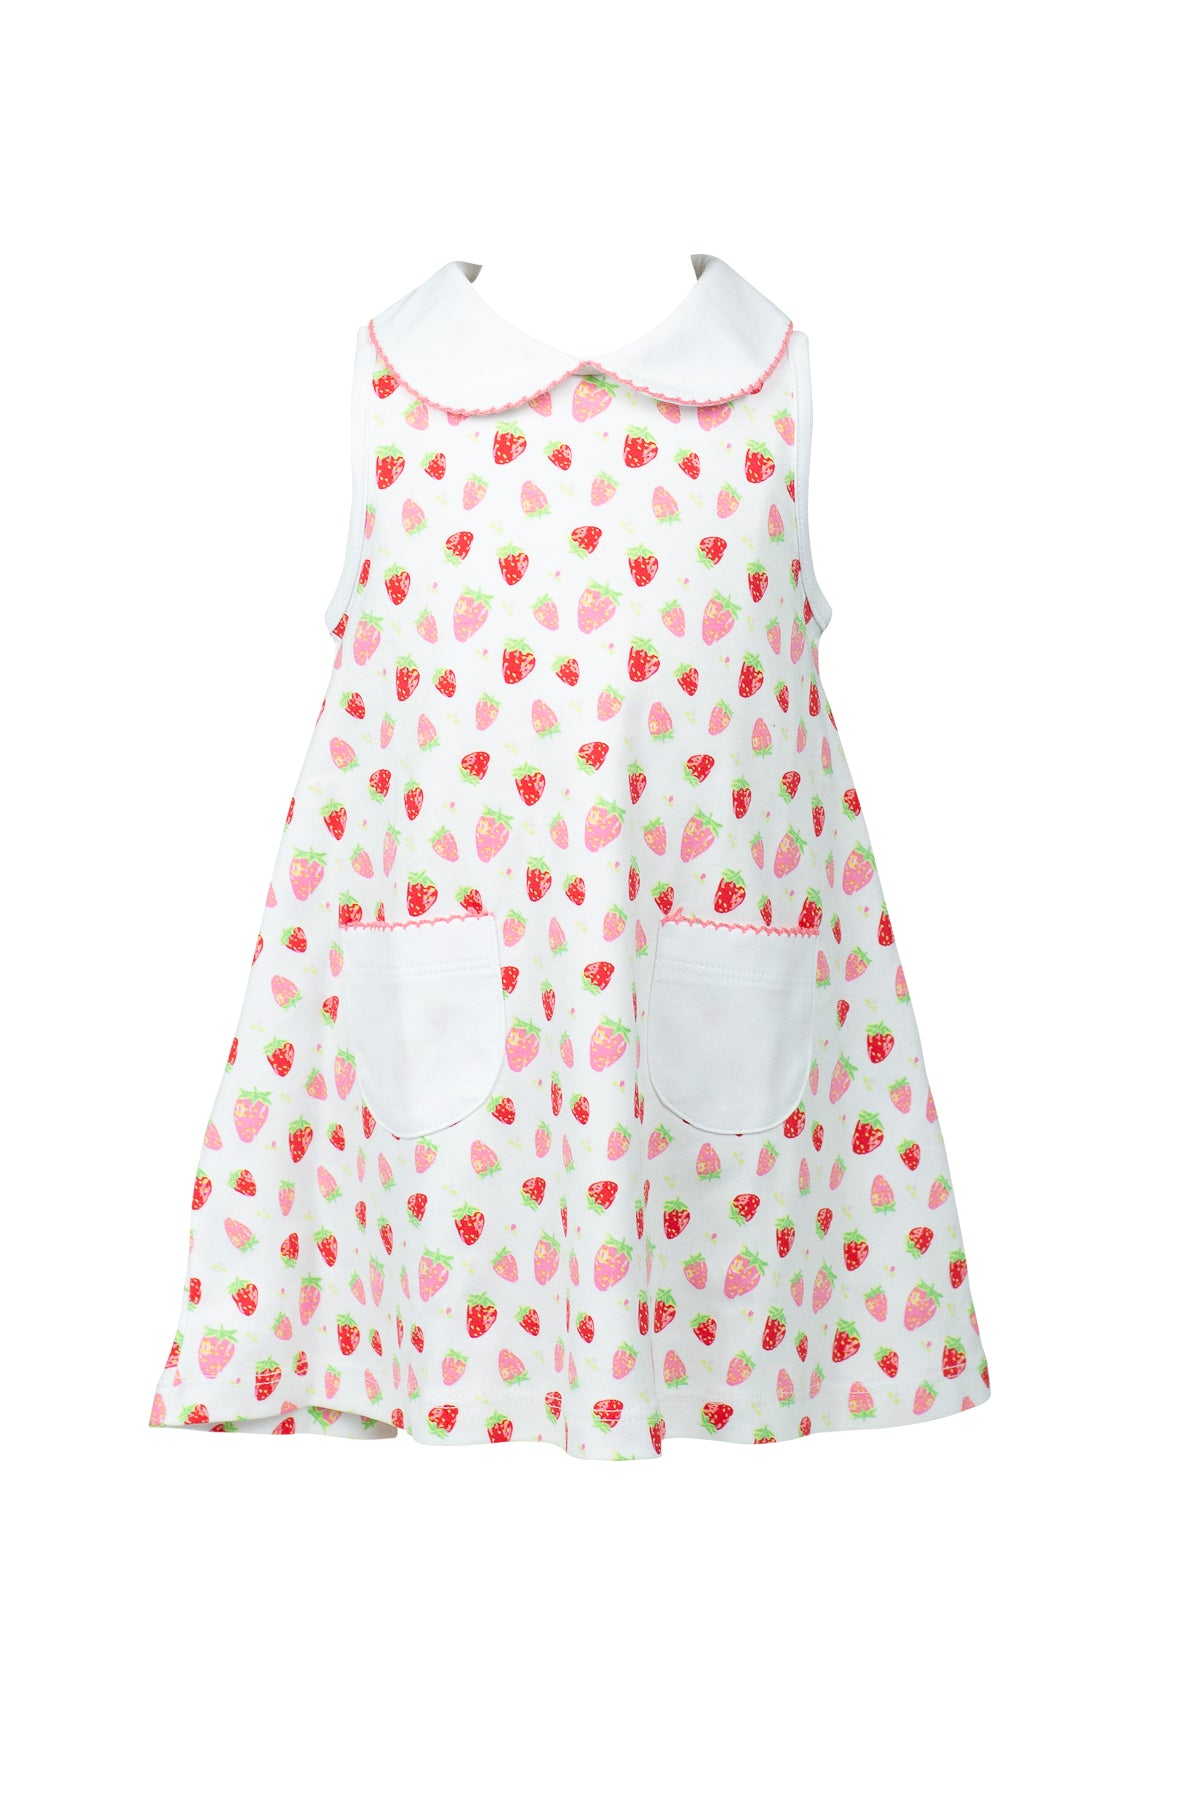 Strawberries A-Line Dress